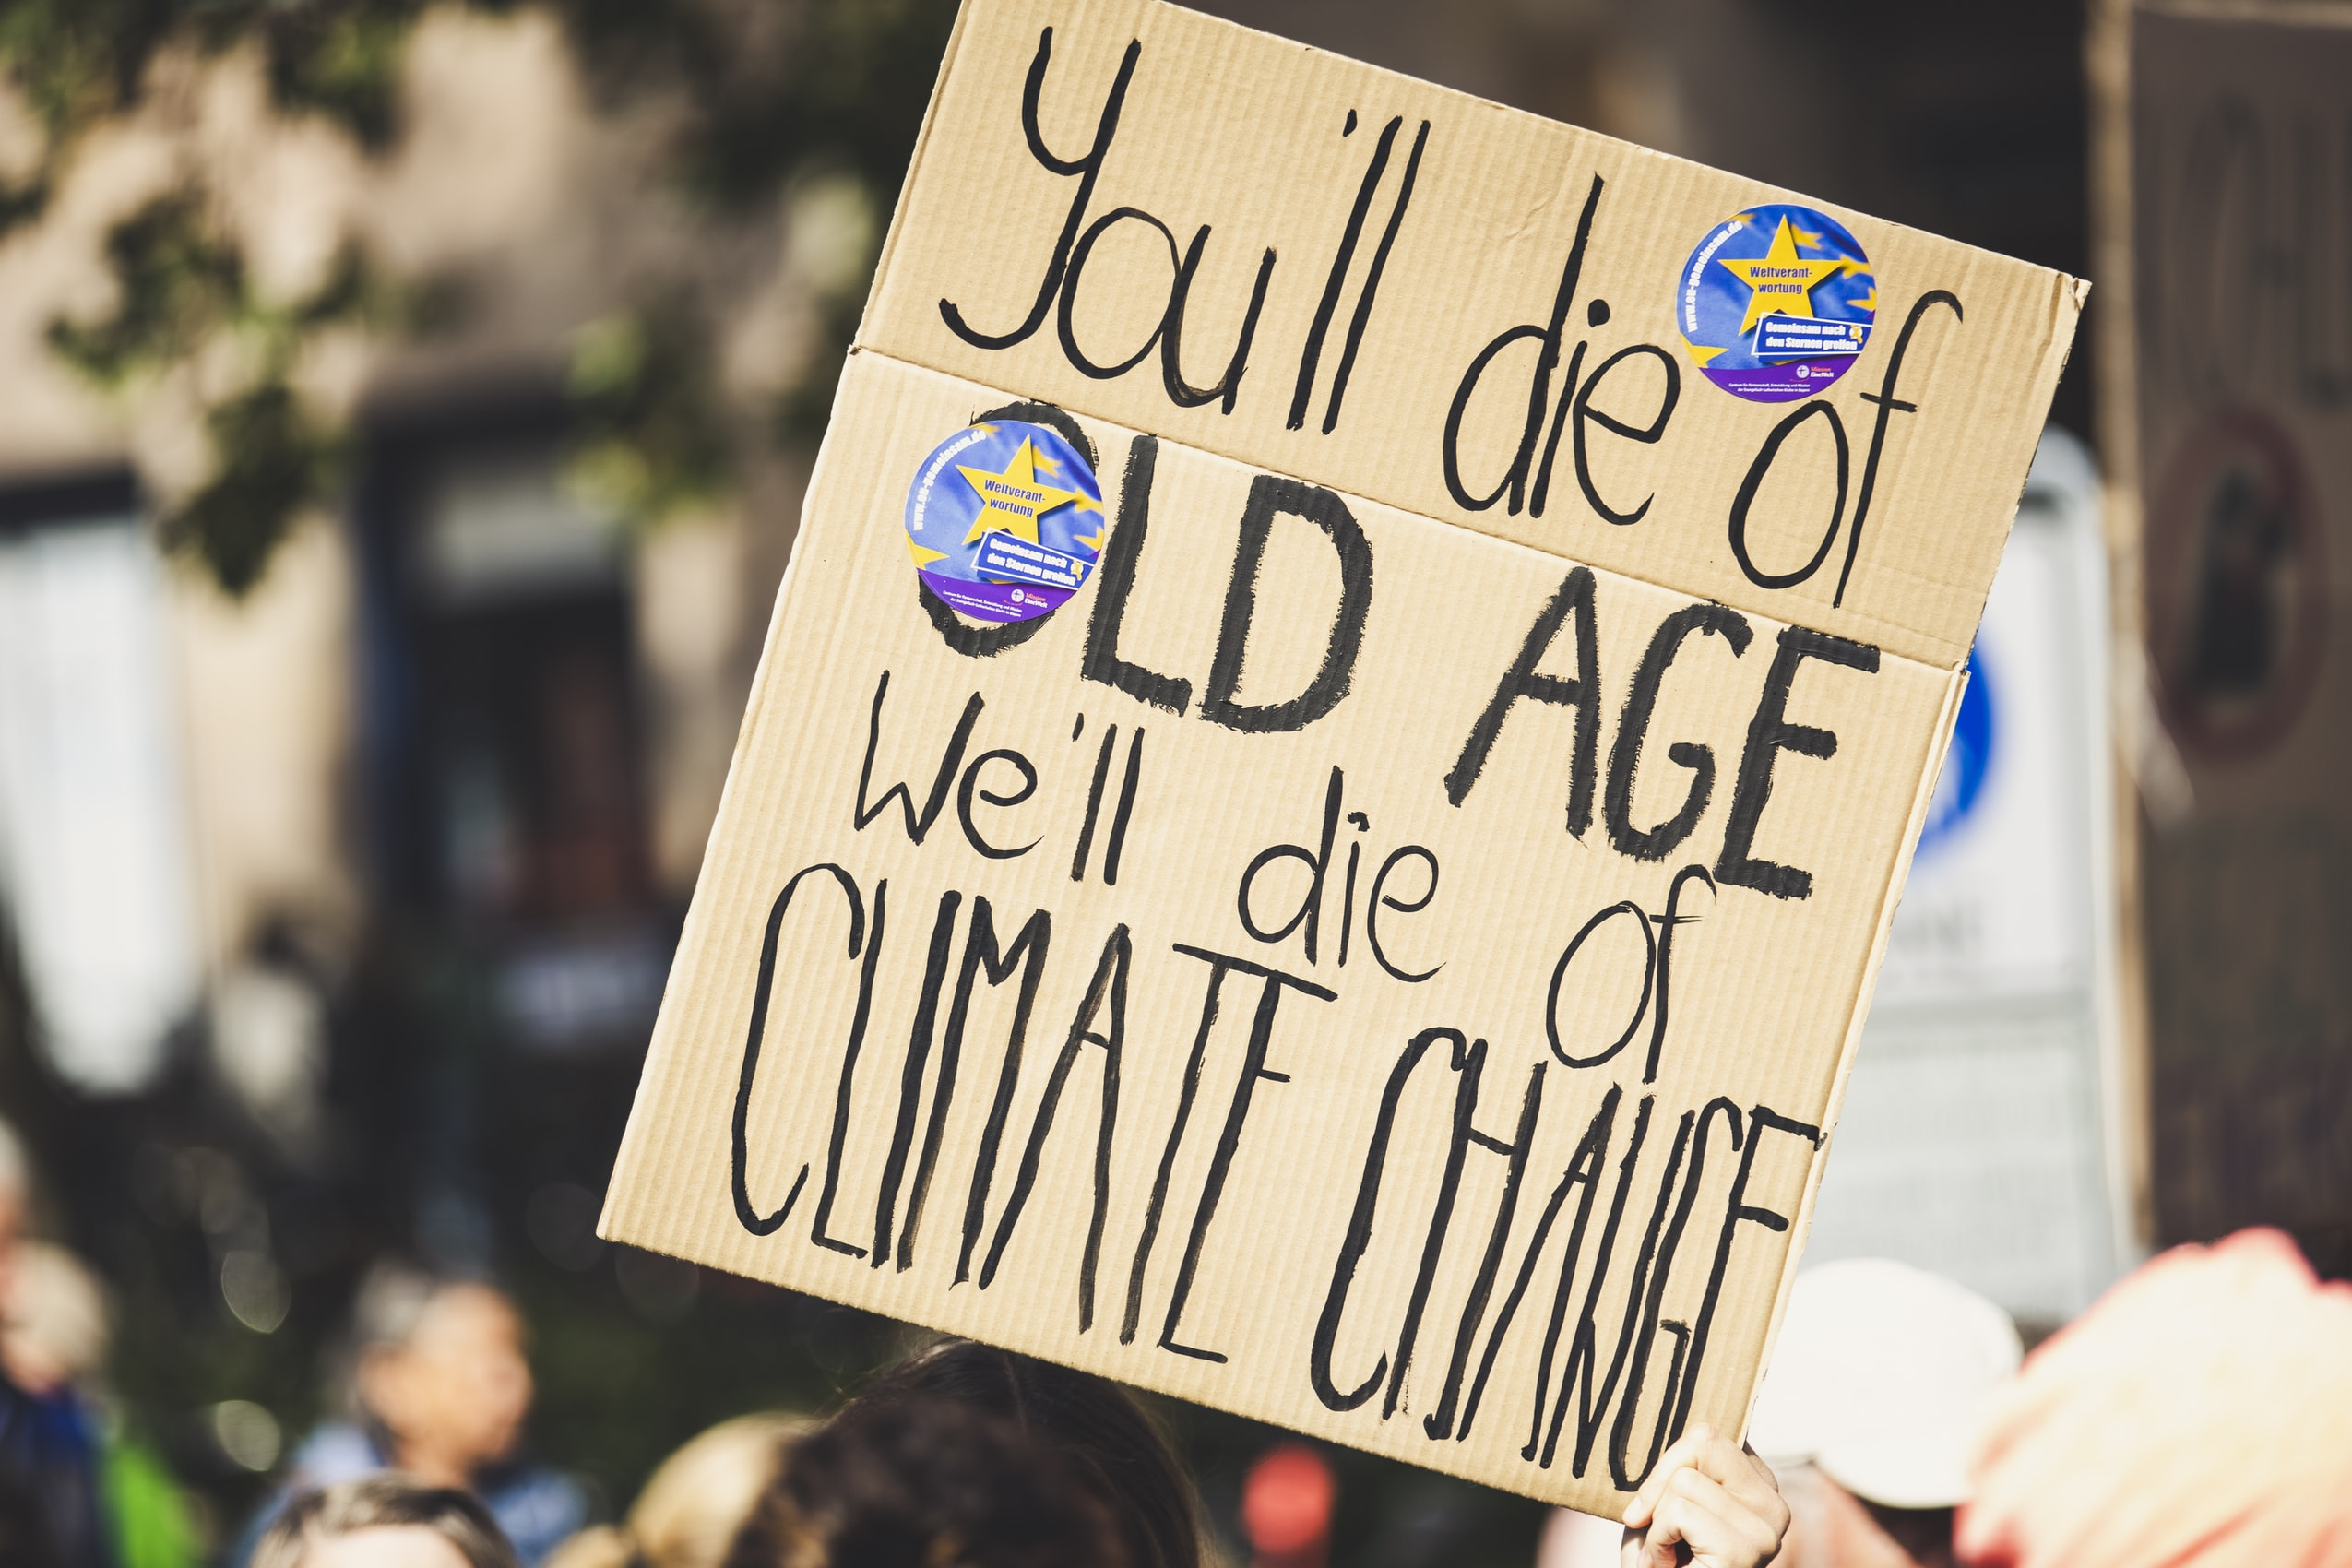 Die of Climate Change Sign